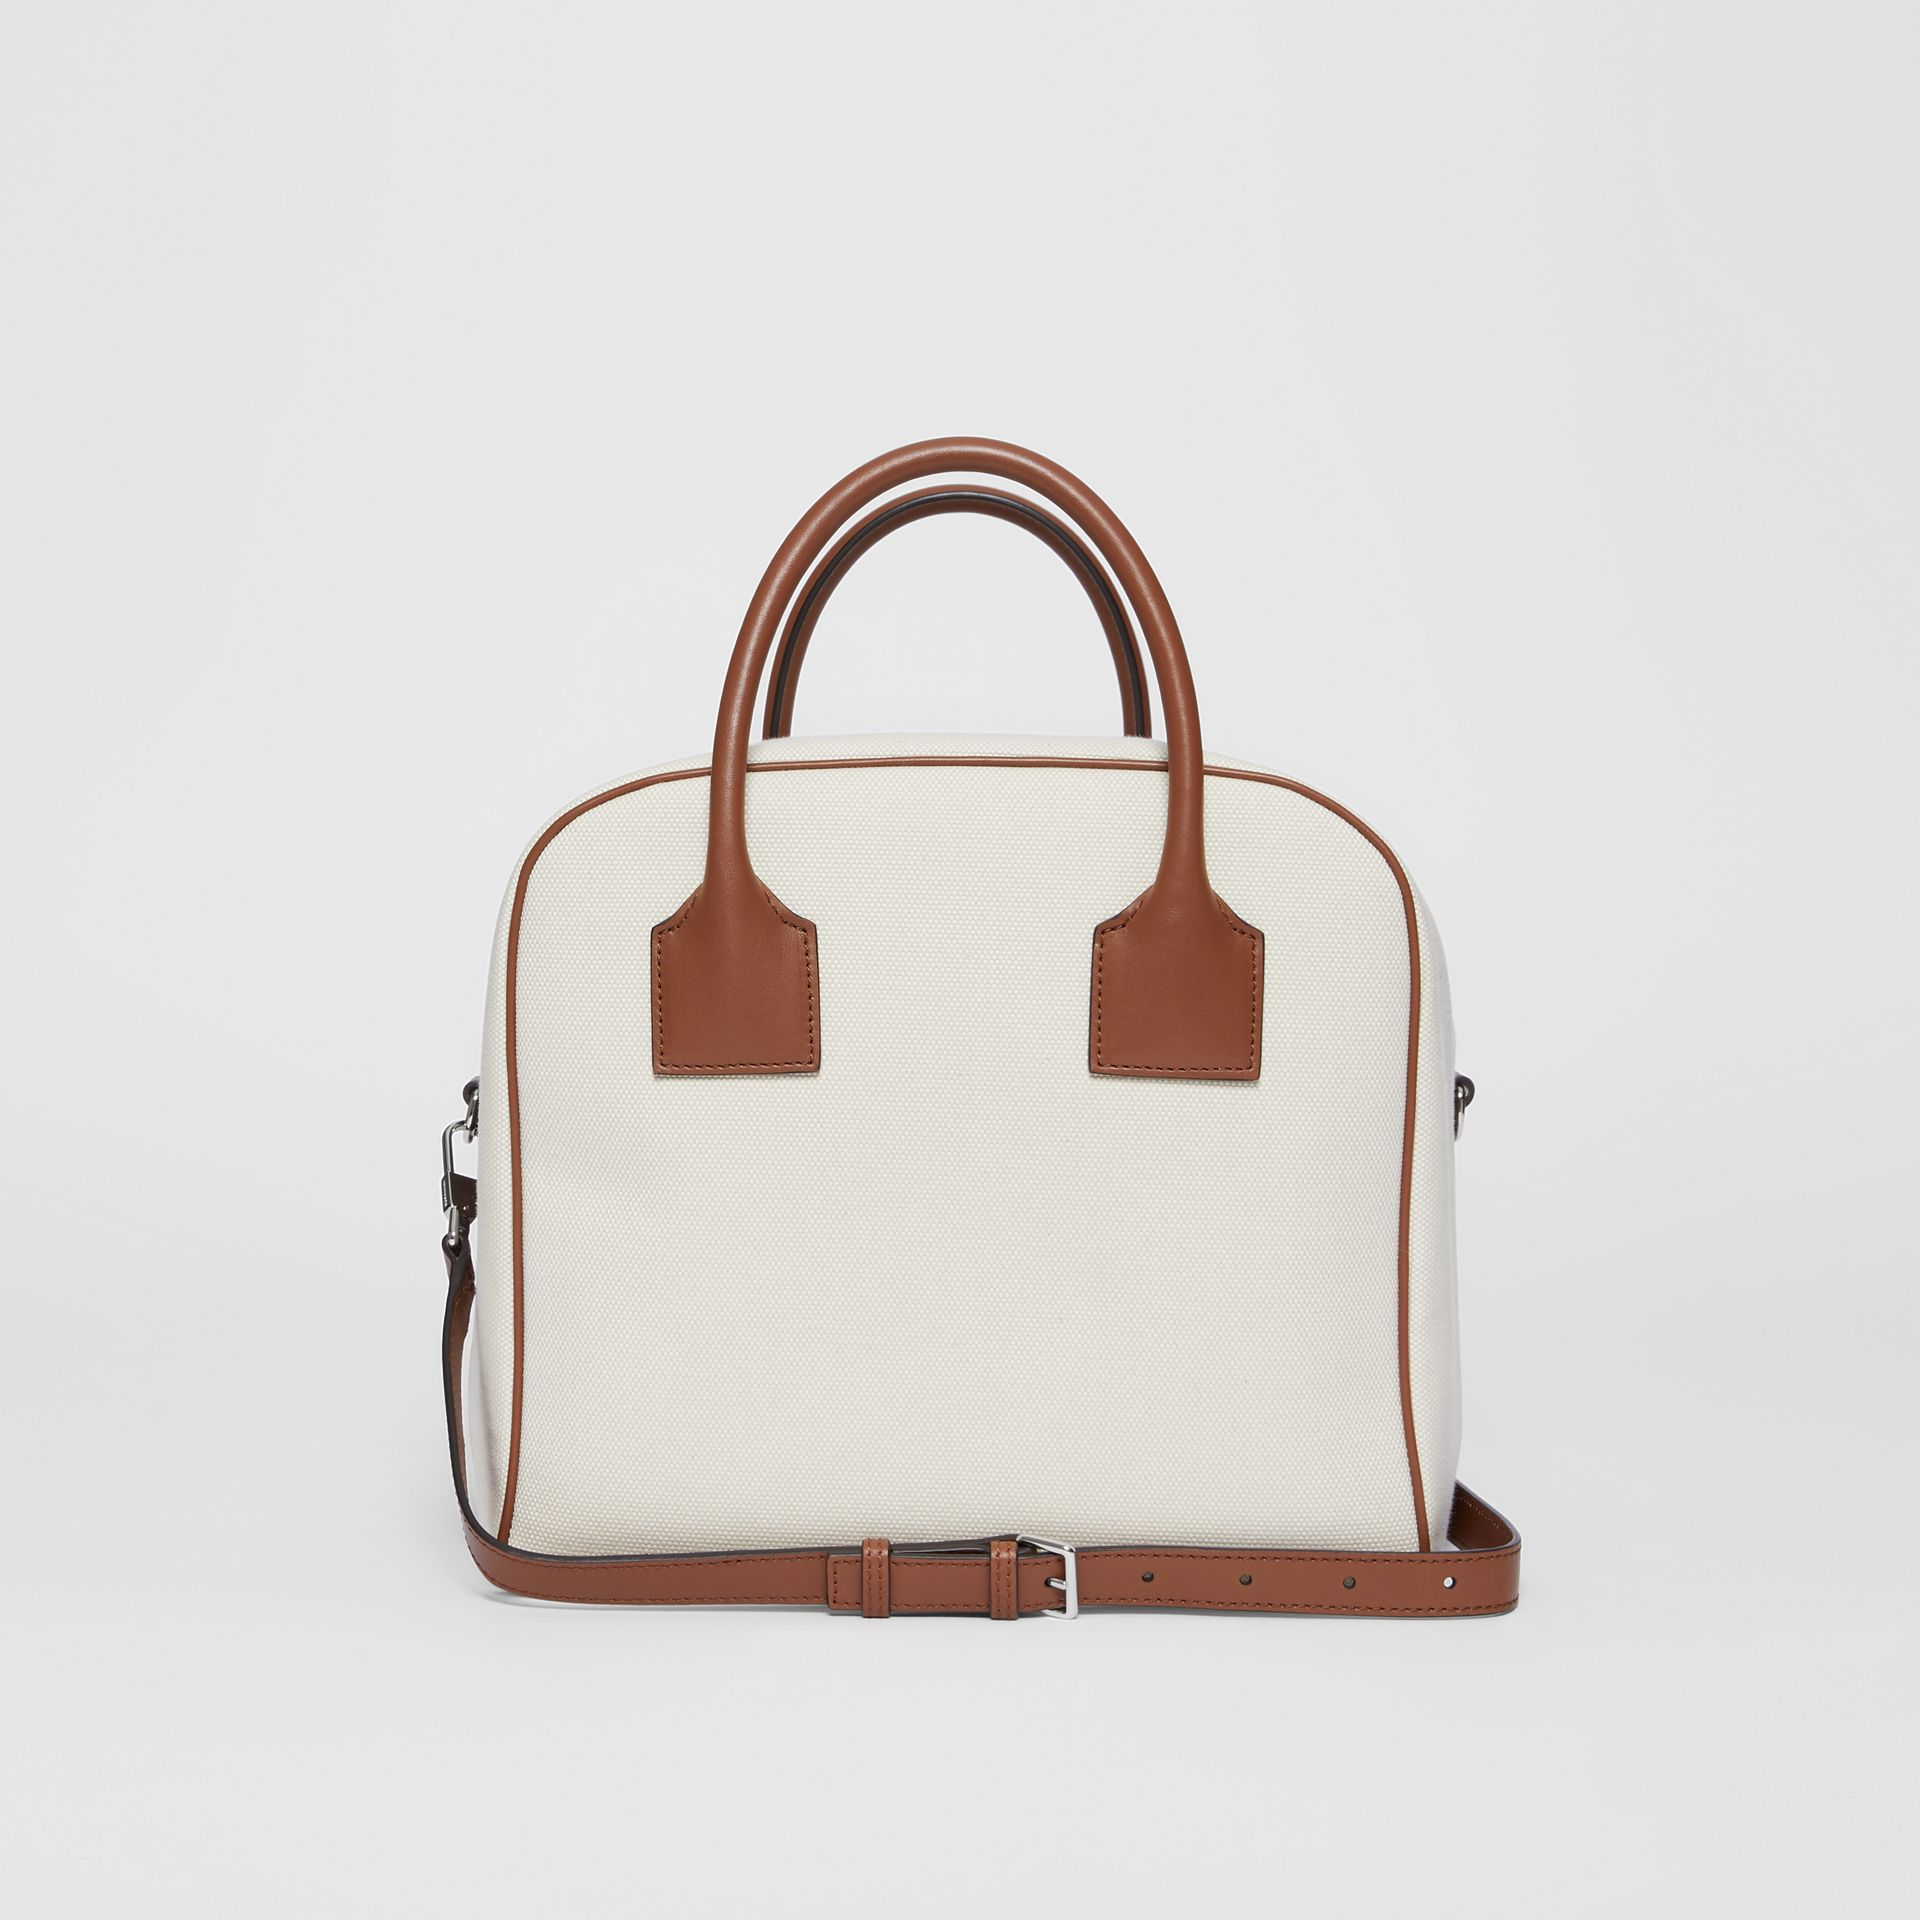 Medium Horseferry Print Canvas Cube Bag in Natural/malt Brown - Women | Burberry Hong Kong S.A.R - gallery image 8